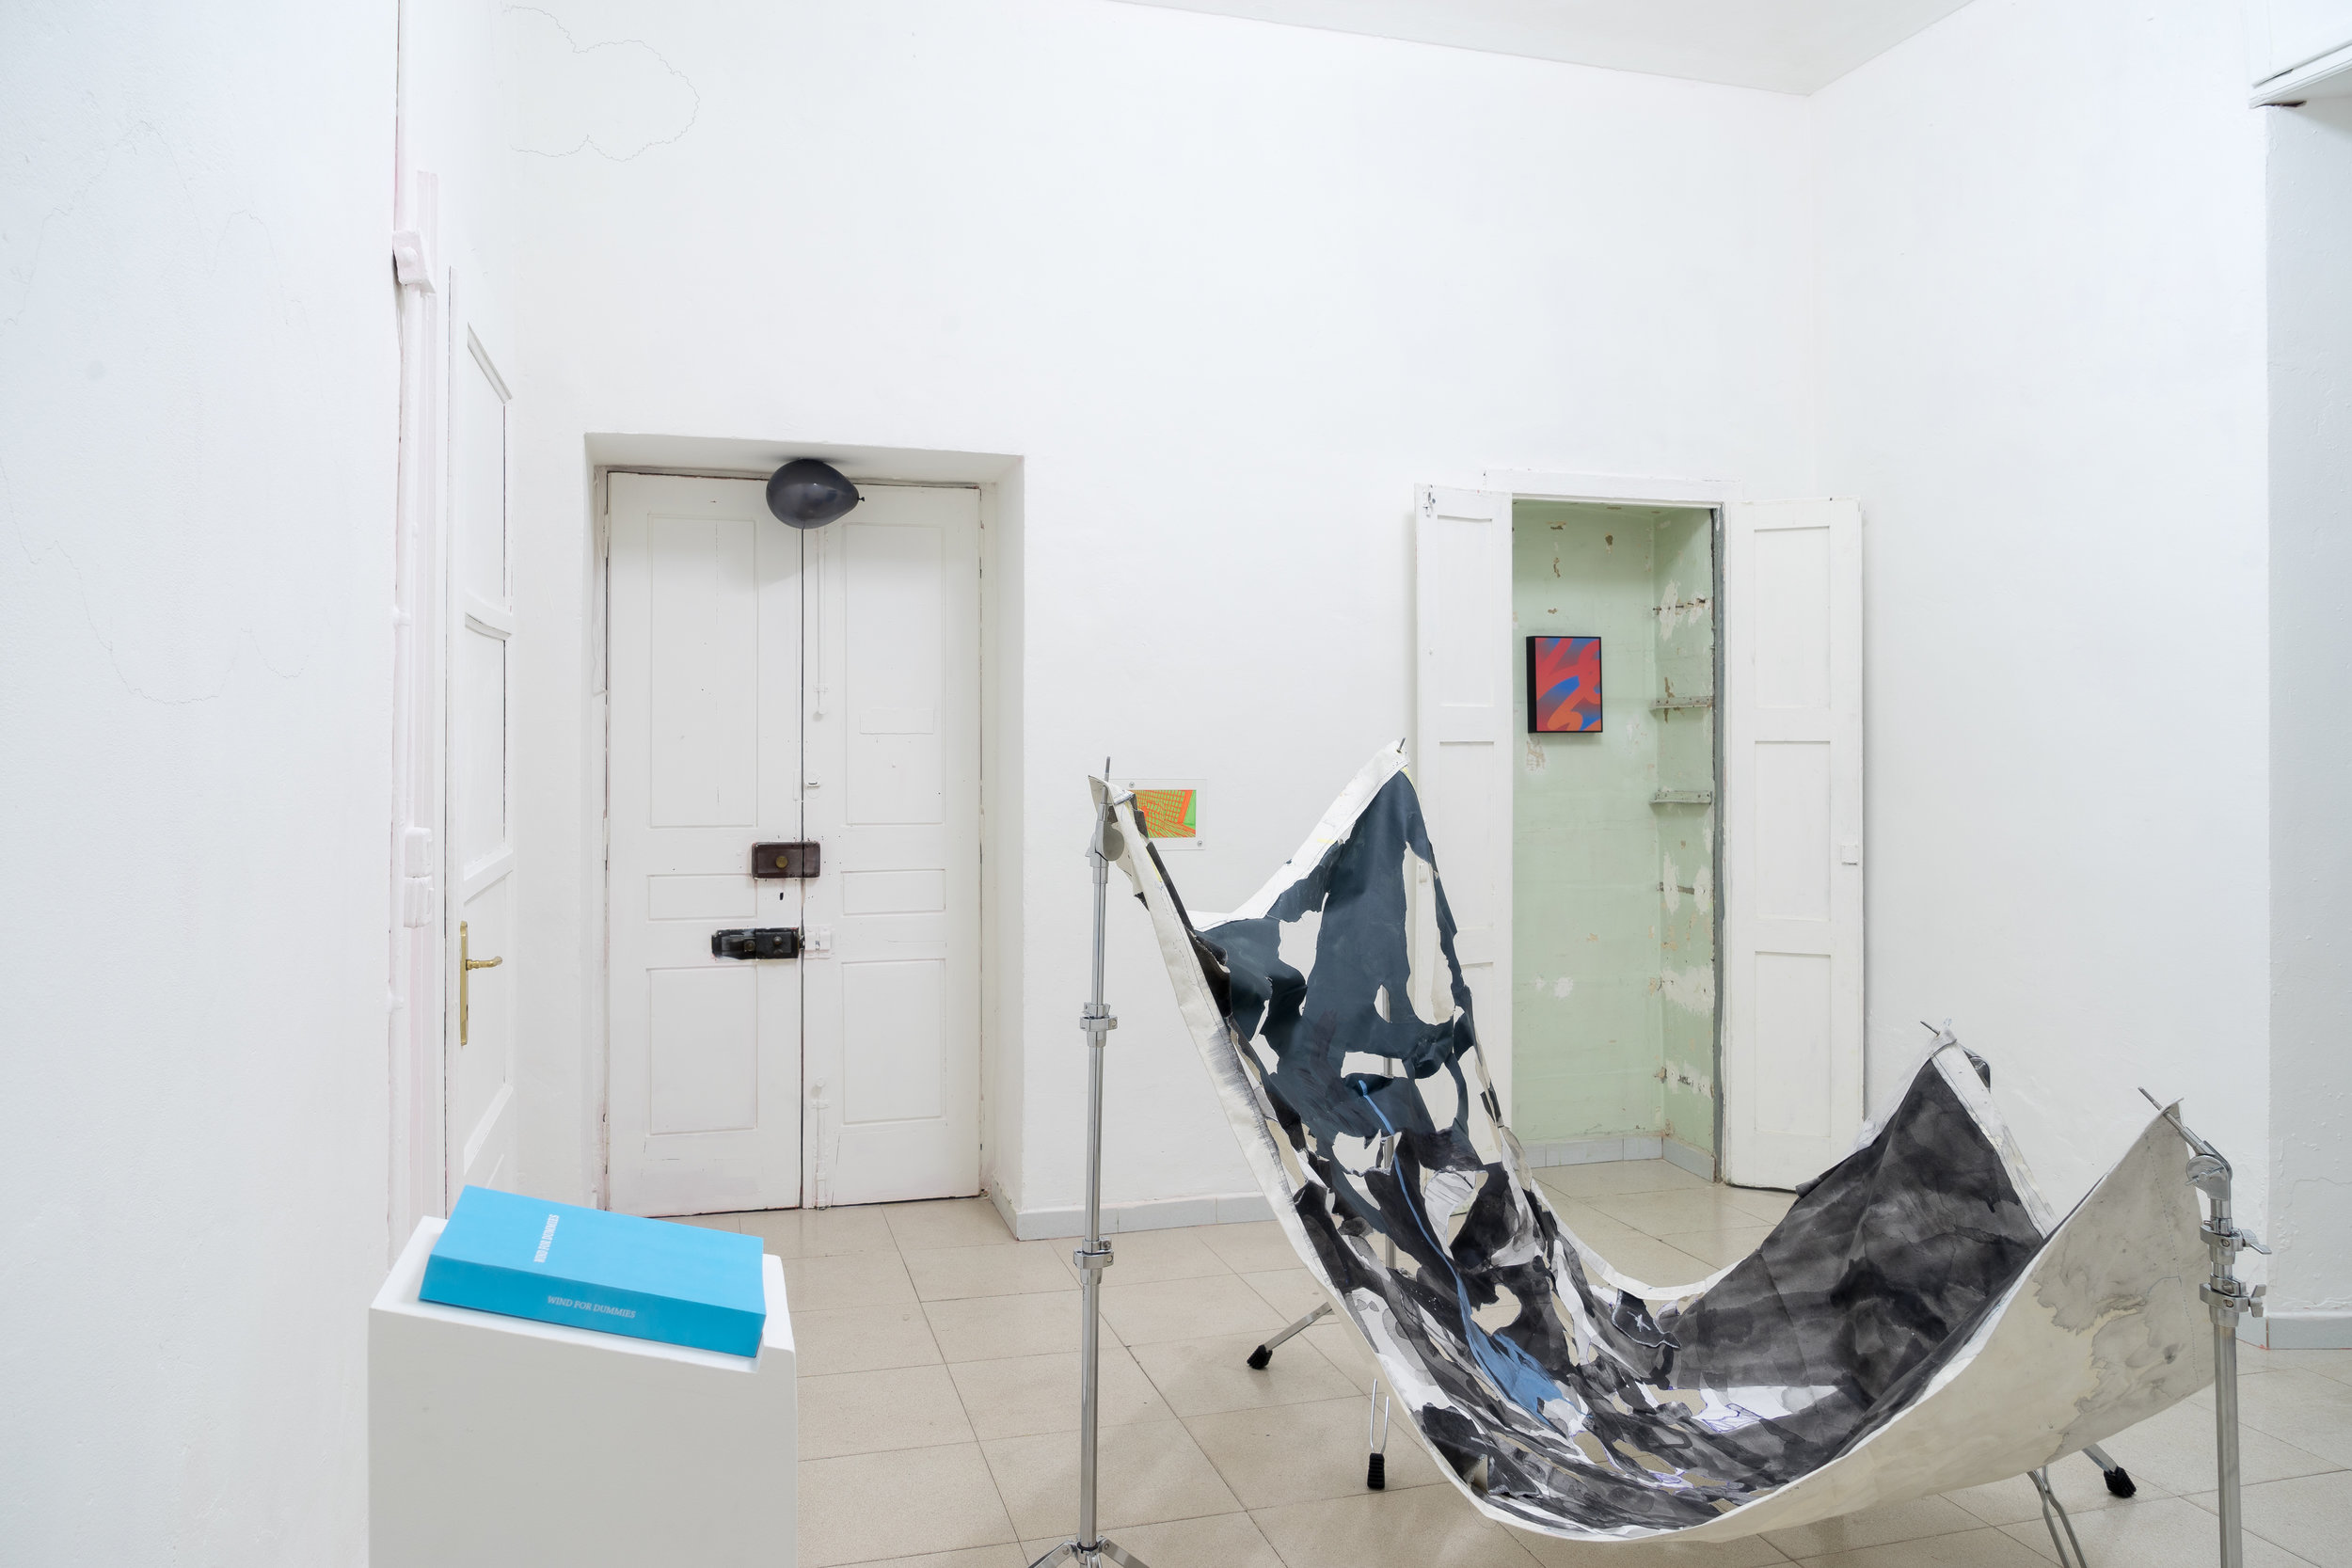 the-theory-of-clouds-spaziobuonasera-68-installation-view.jpg